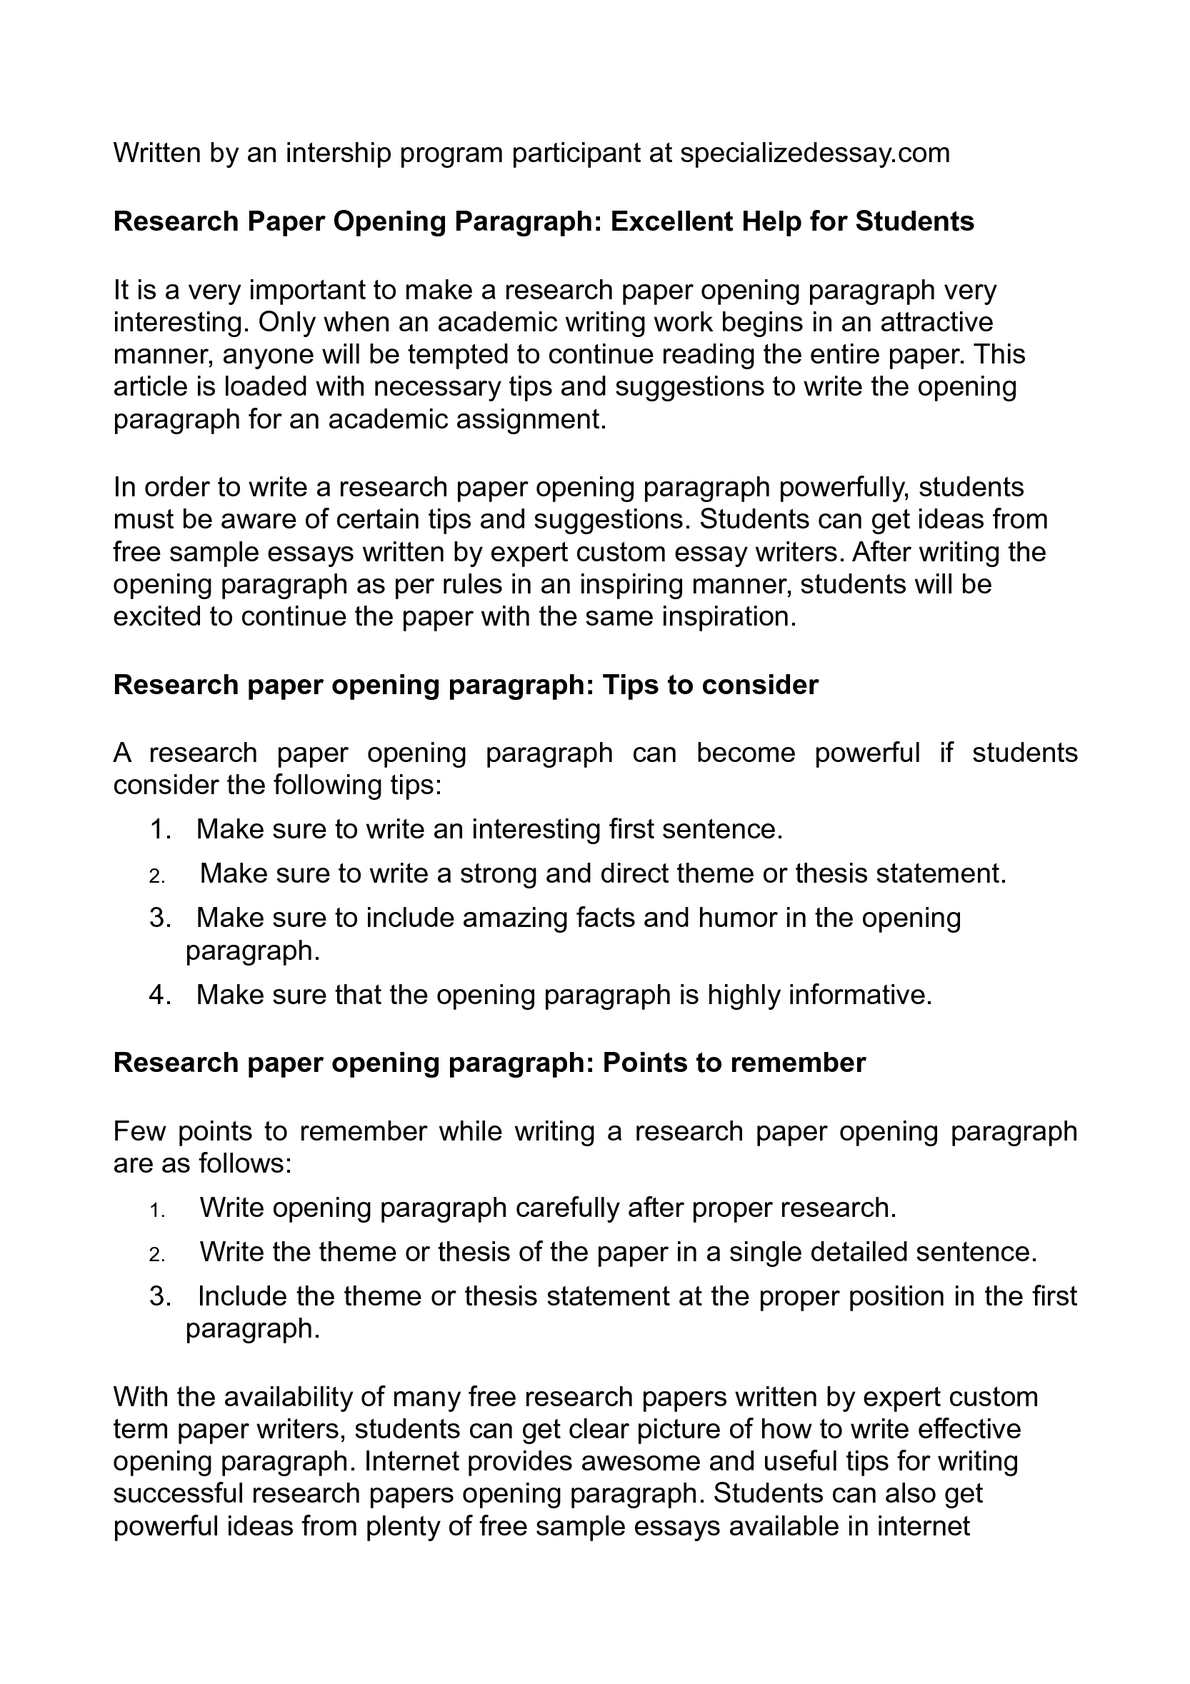 016 Essay Example First Sentence Of An Frightening Academic Good Writing The Draft Full